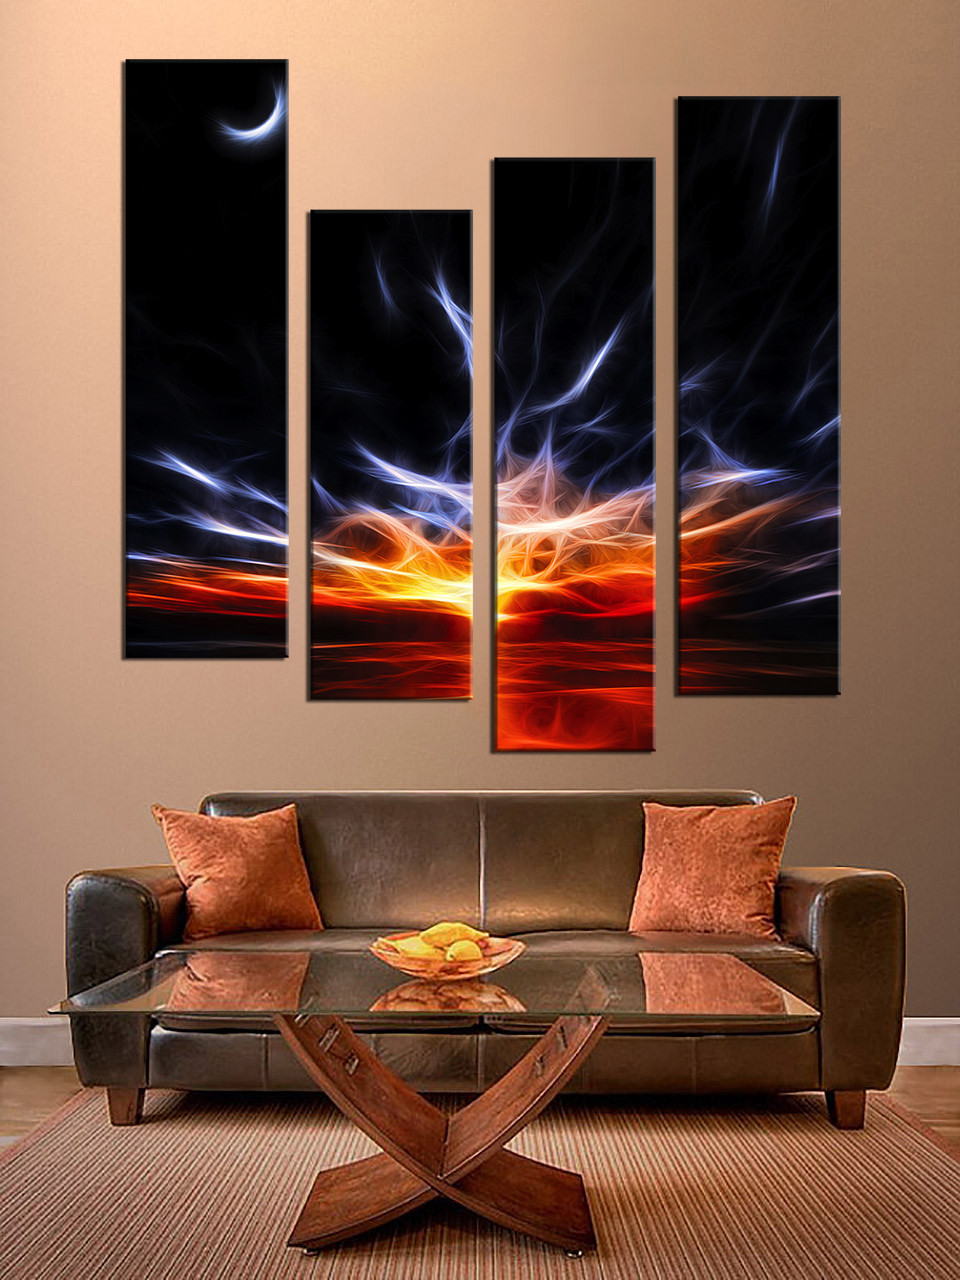 Exceptional Living Room Wall Decor, 4 Piece Canvas Wall Art, Oil Paintings Huge  Pictures,